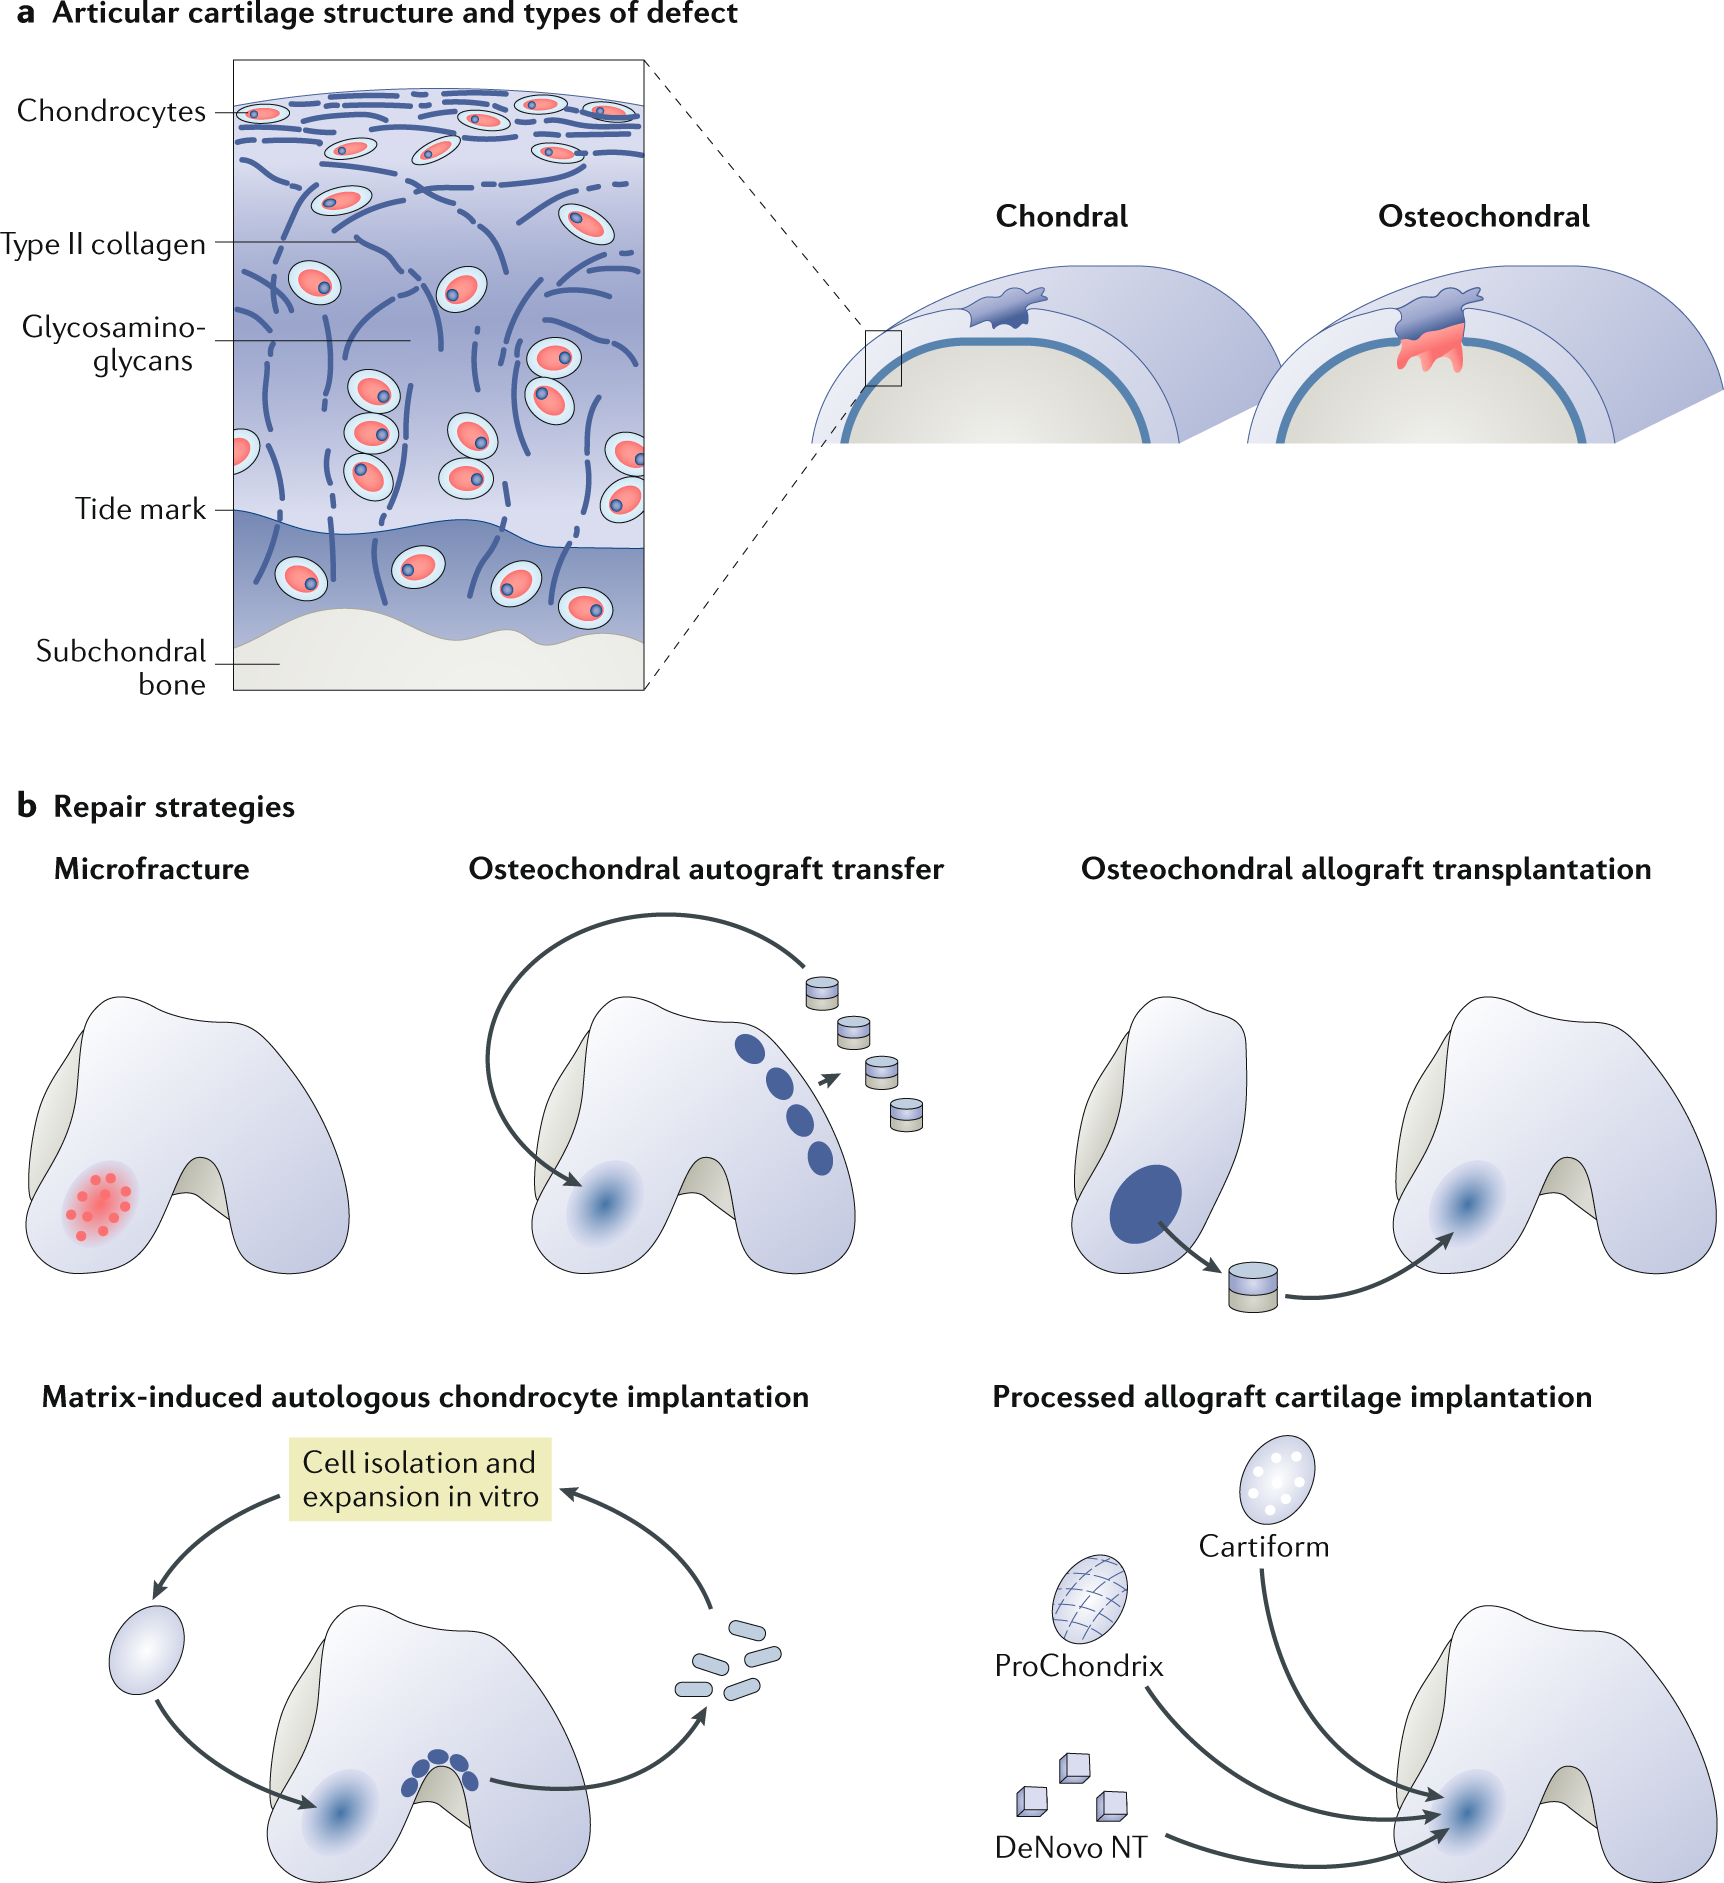 Surgical and tissue engineering strategies for articular cartilage